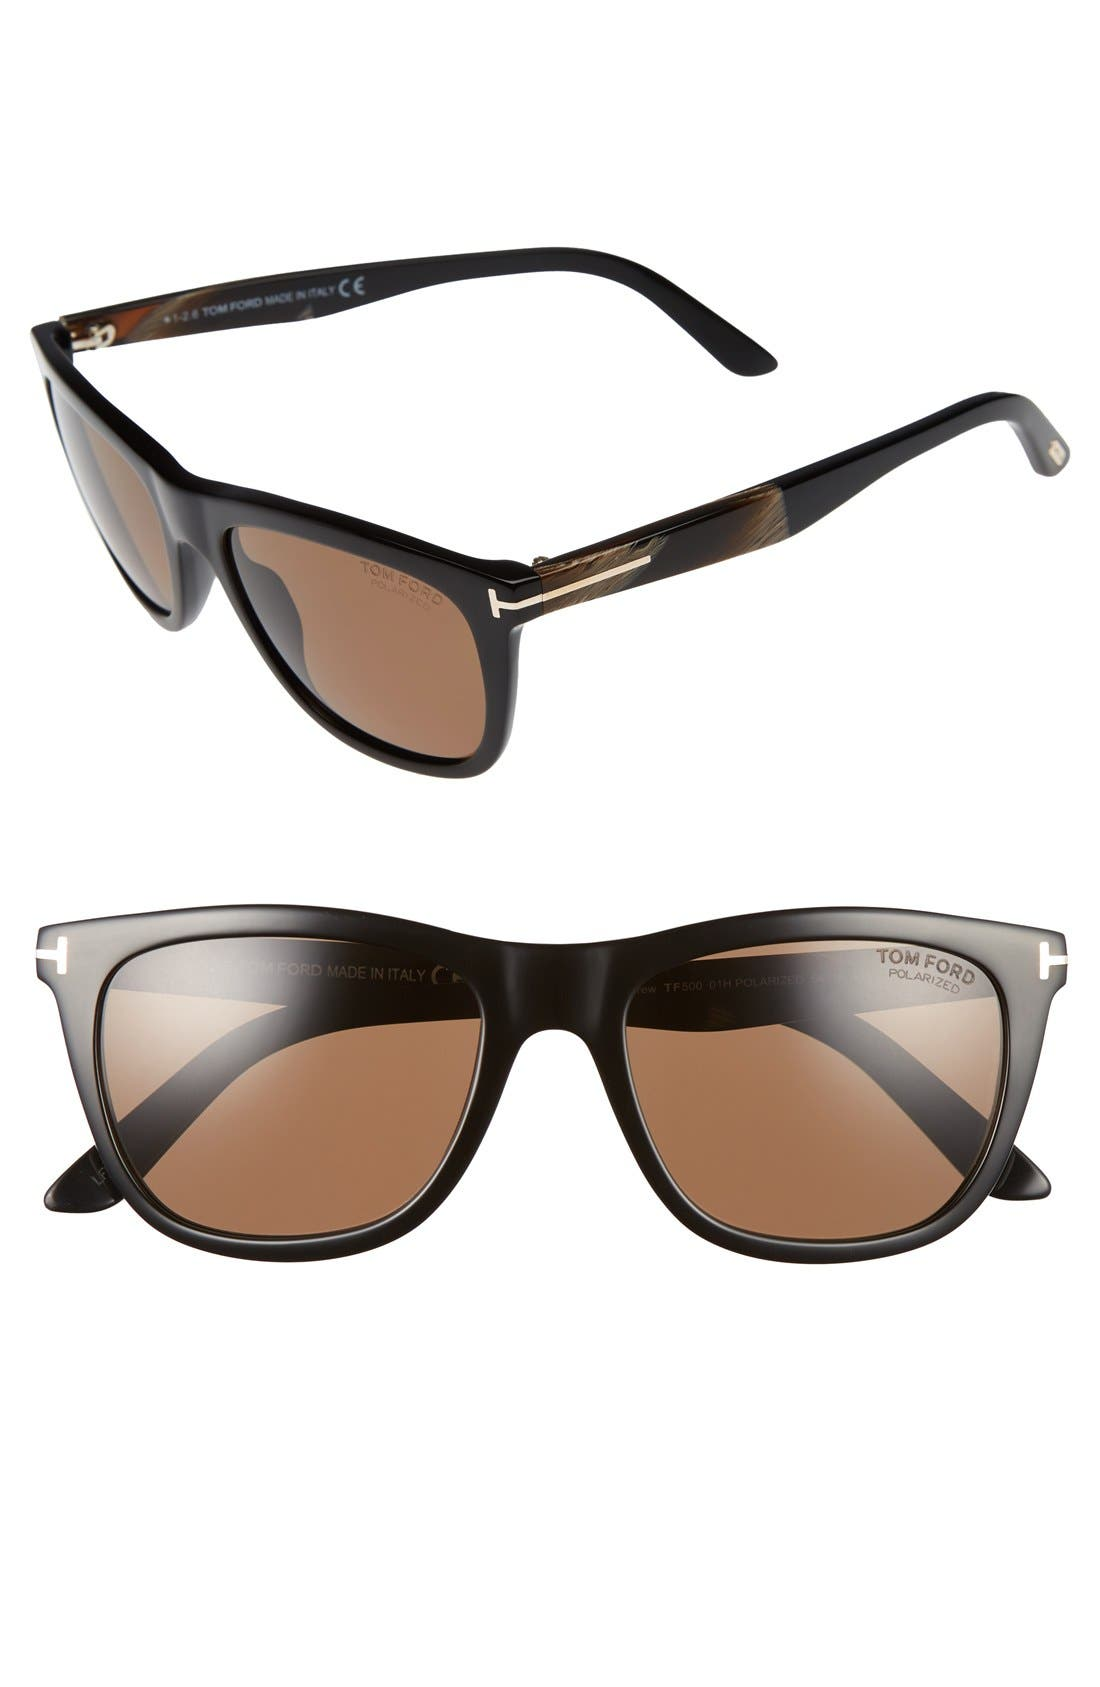 Andrew 54mm Sunglasses,                         Main,                         color, 001